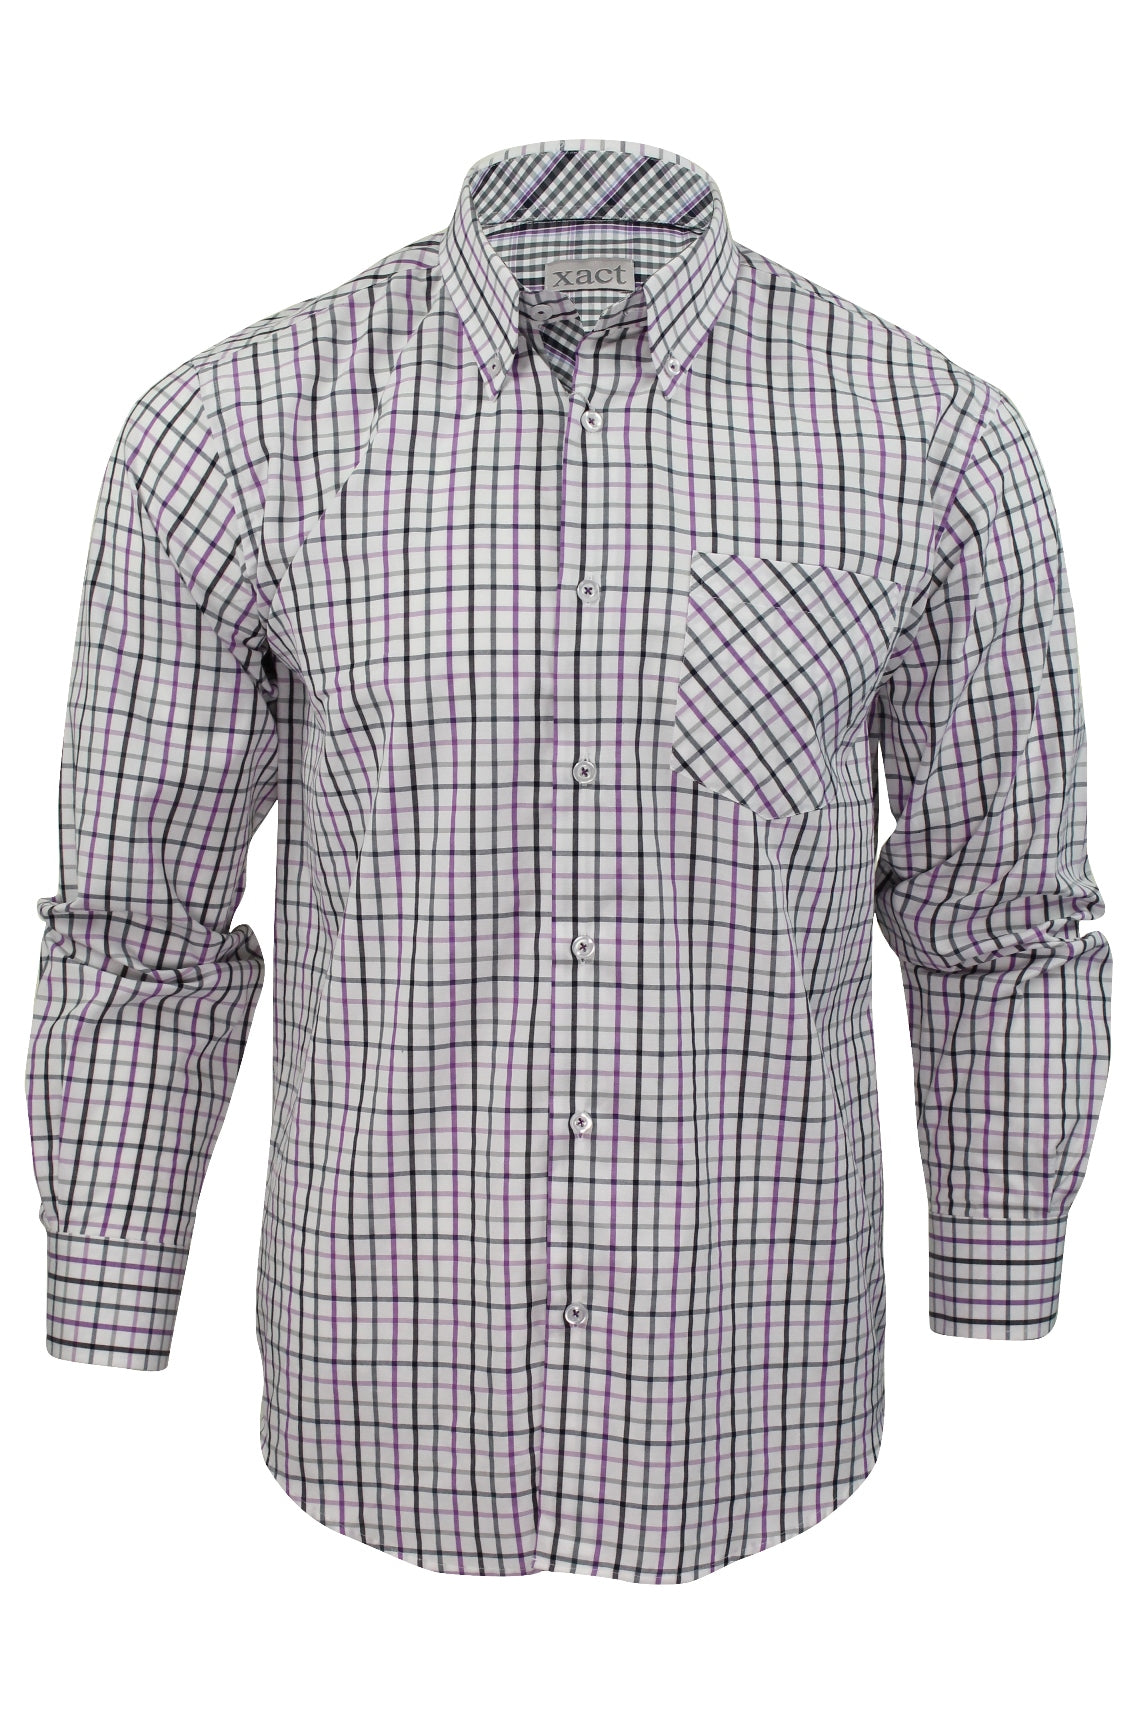 Mens Long Sleeved Check Shirt by Xact Clothing_01_1510116